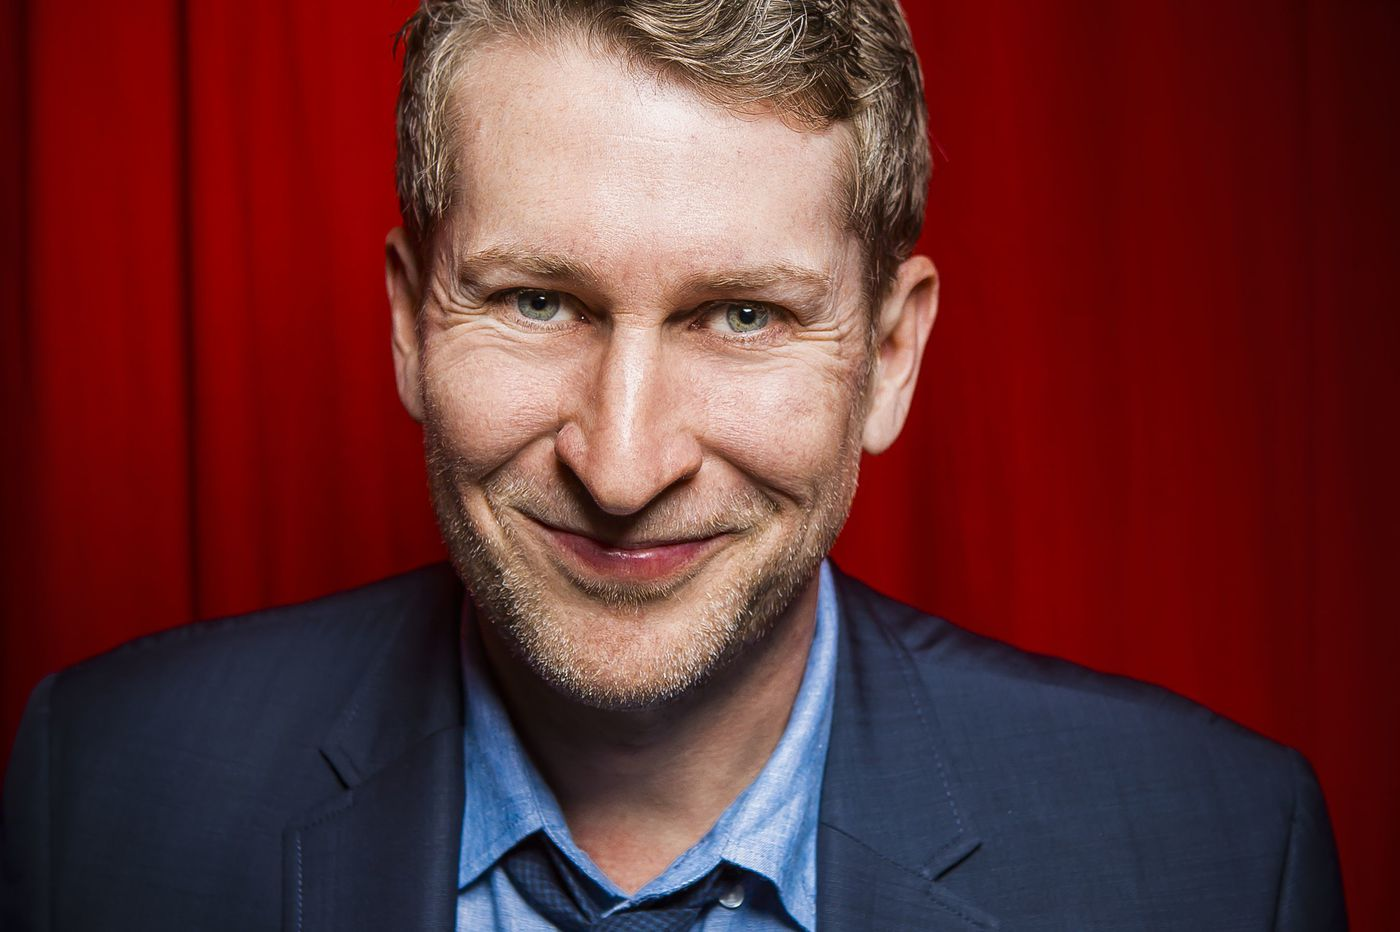 Scott Aukerman talks 'Comedy Bang! Bang!,' 'Between Two Ferns,' and 'Curb Your Enthusiasm' before his Philly appearance